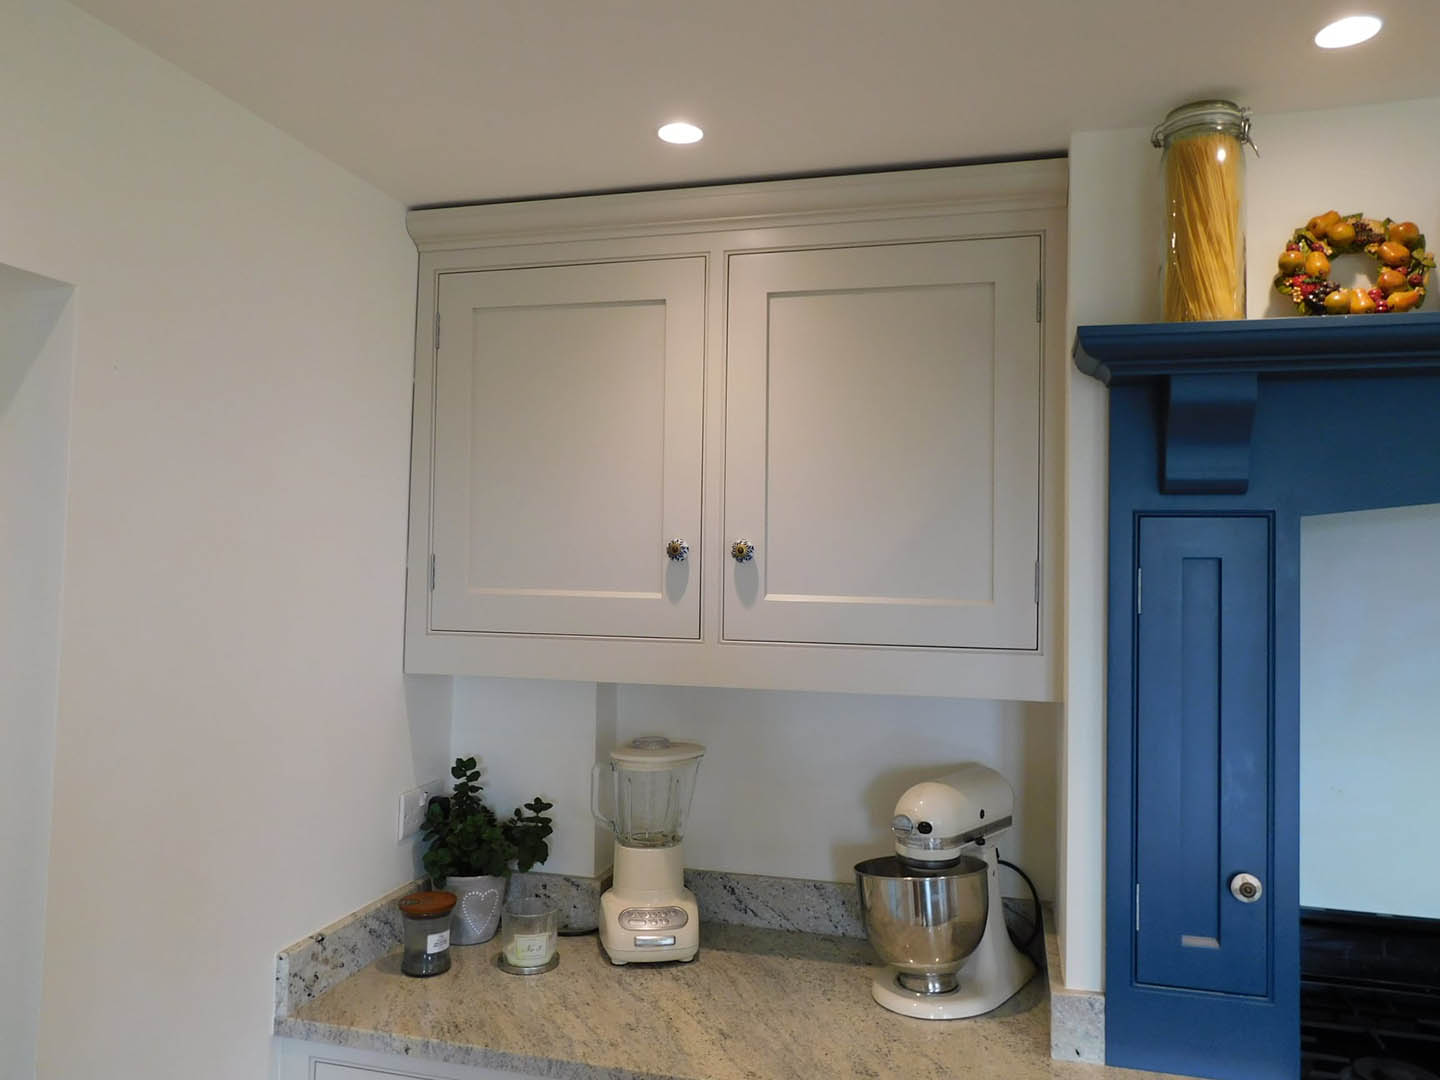 A kitchen cupboard with a mixer and blender beneath it